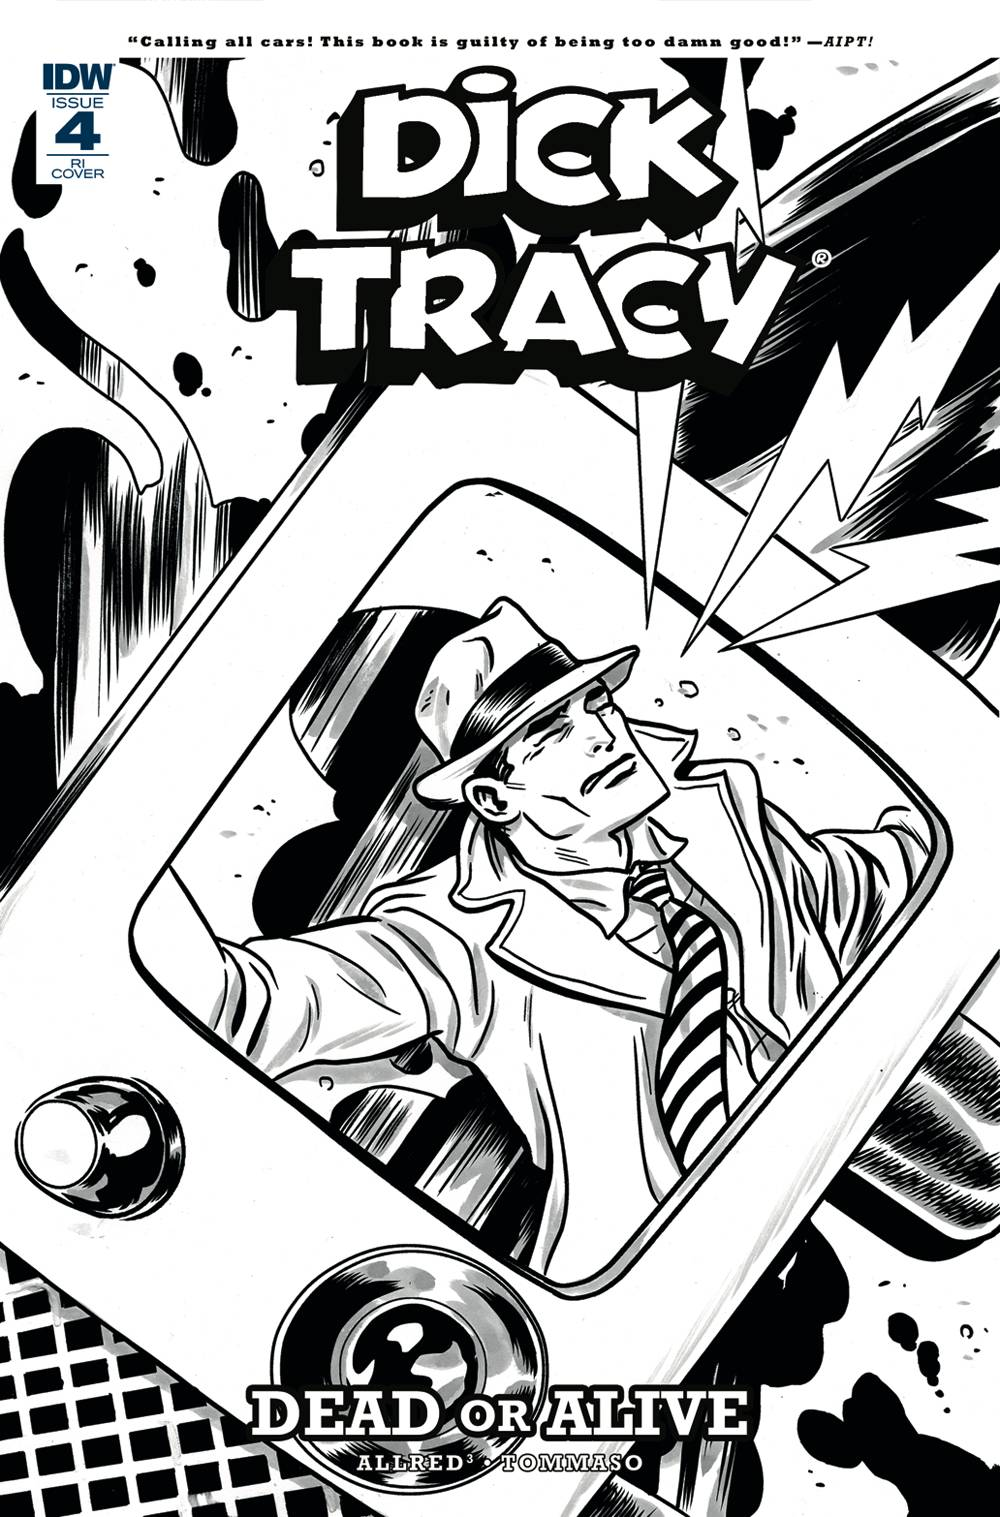 DICK TRACY DEAD OR ALIVE 4 of 4 10 COPY INCV ALLRED.jpg